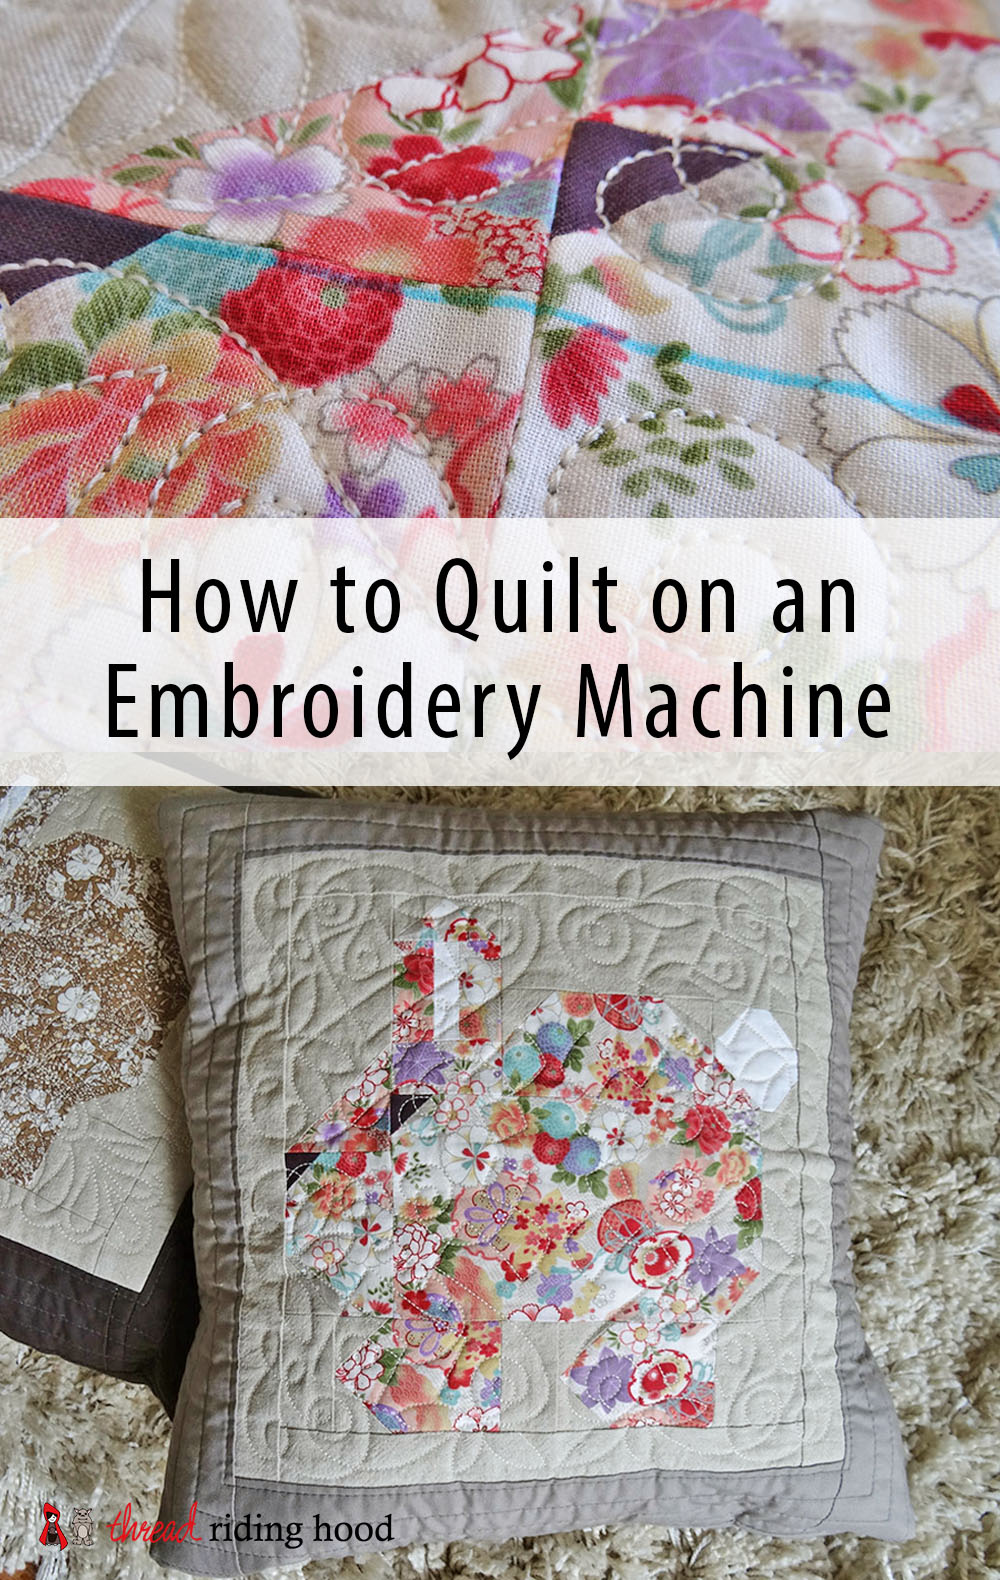 Janome Quilting Embroidery Designs : GOOD INFORMATION ABOUT USING YOUR JANOME EMBROIDERY MACHINE TO DO YOUR QUILTING Janome Life